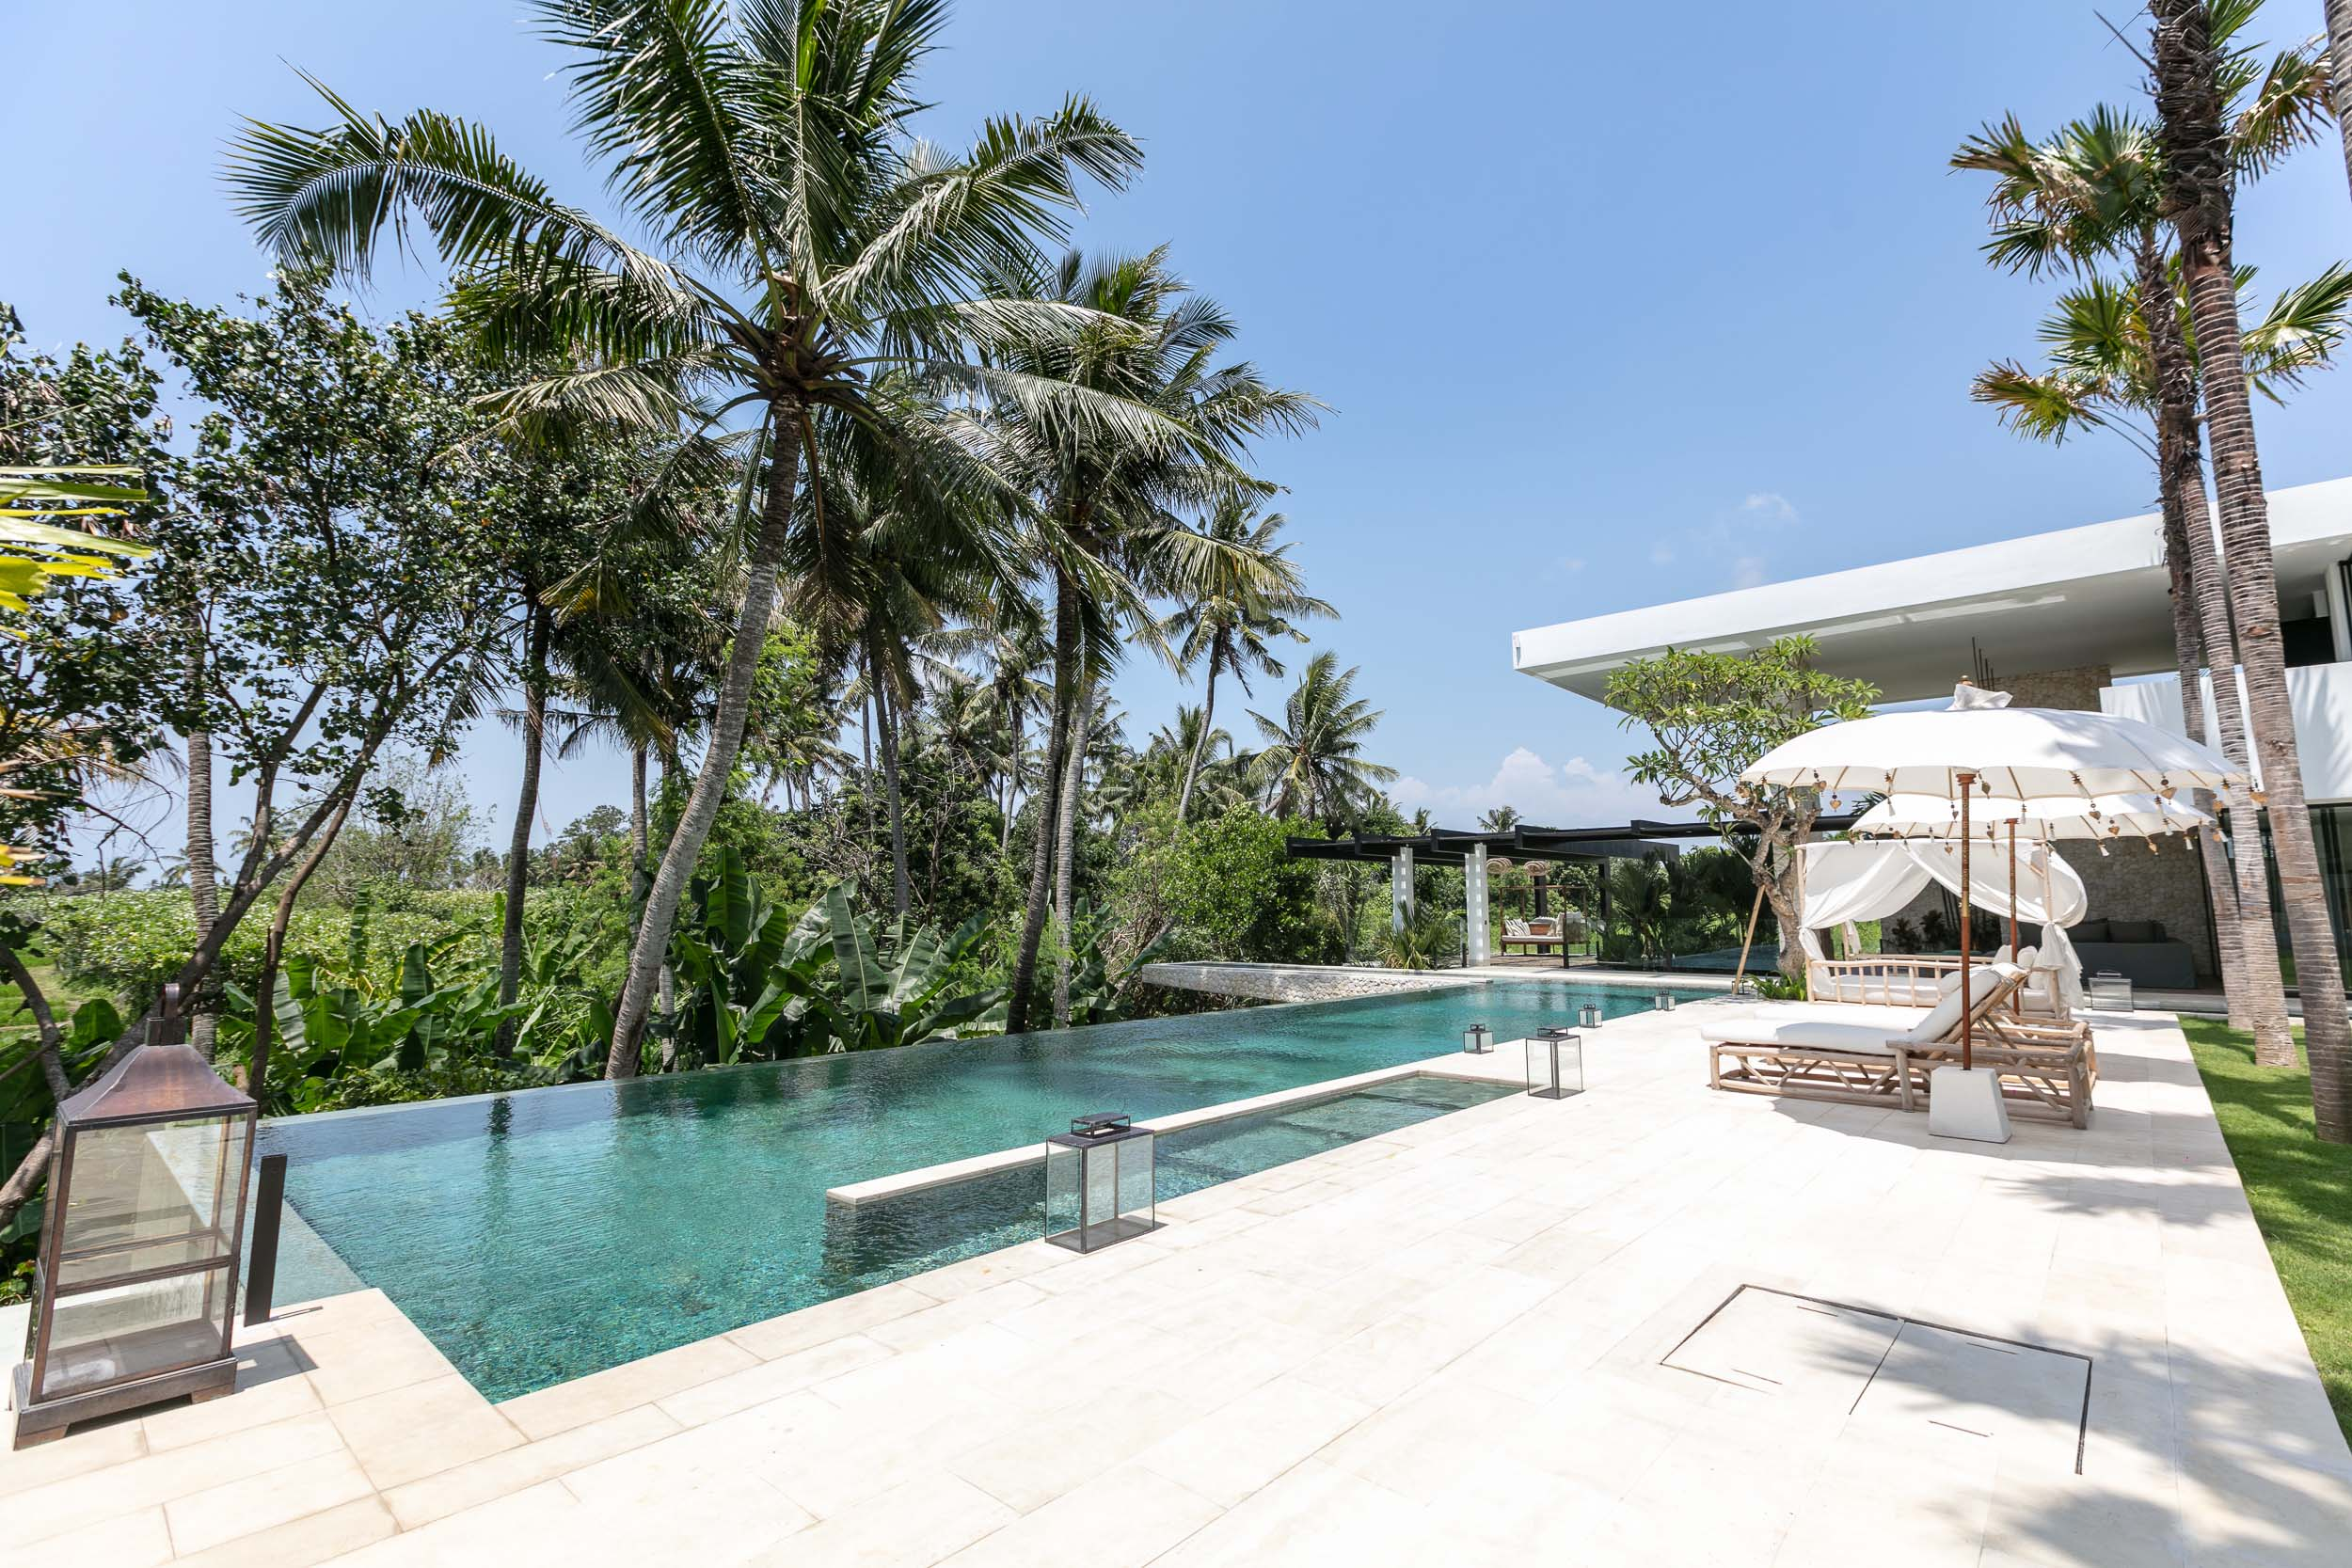 South of Bali Wellness retreat